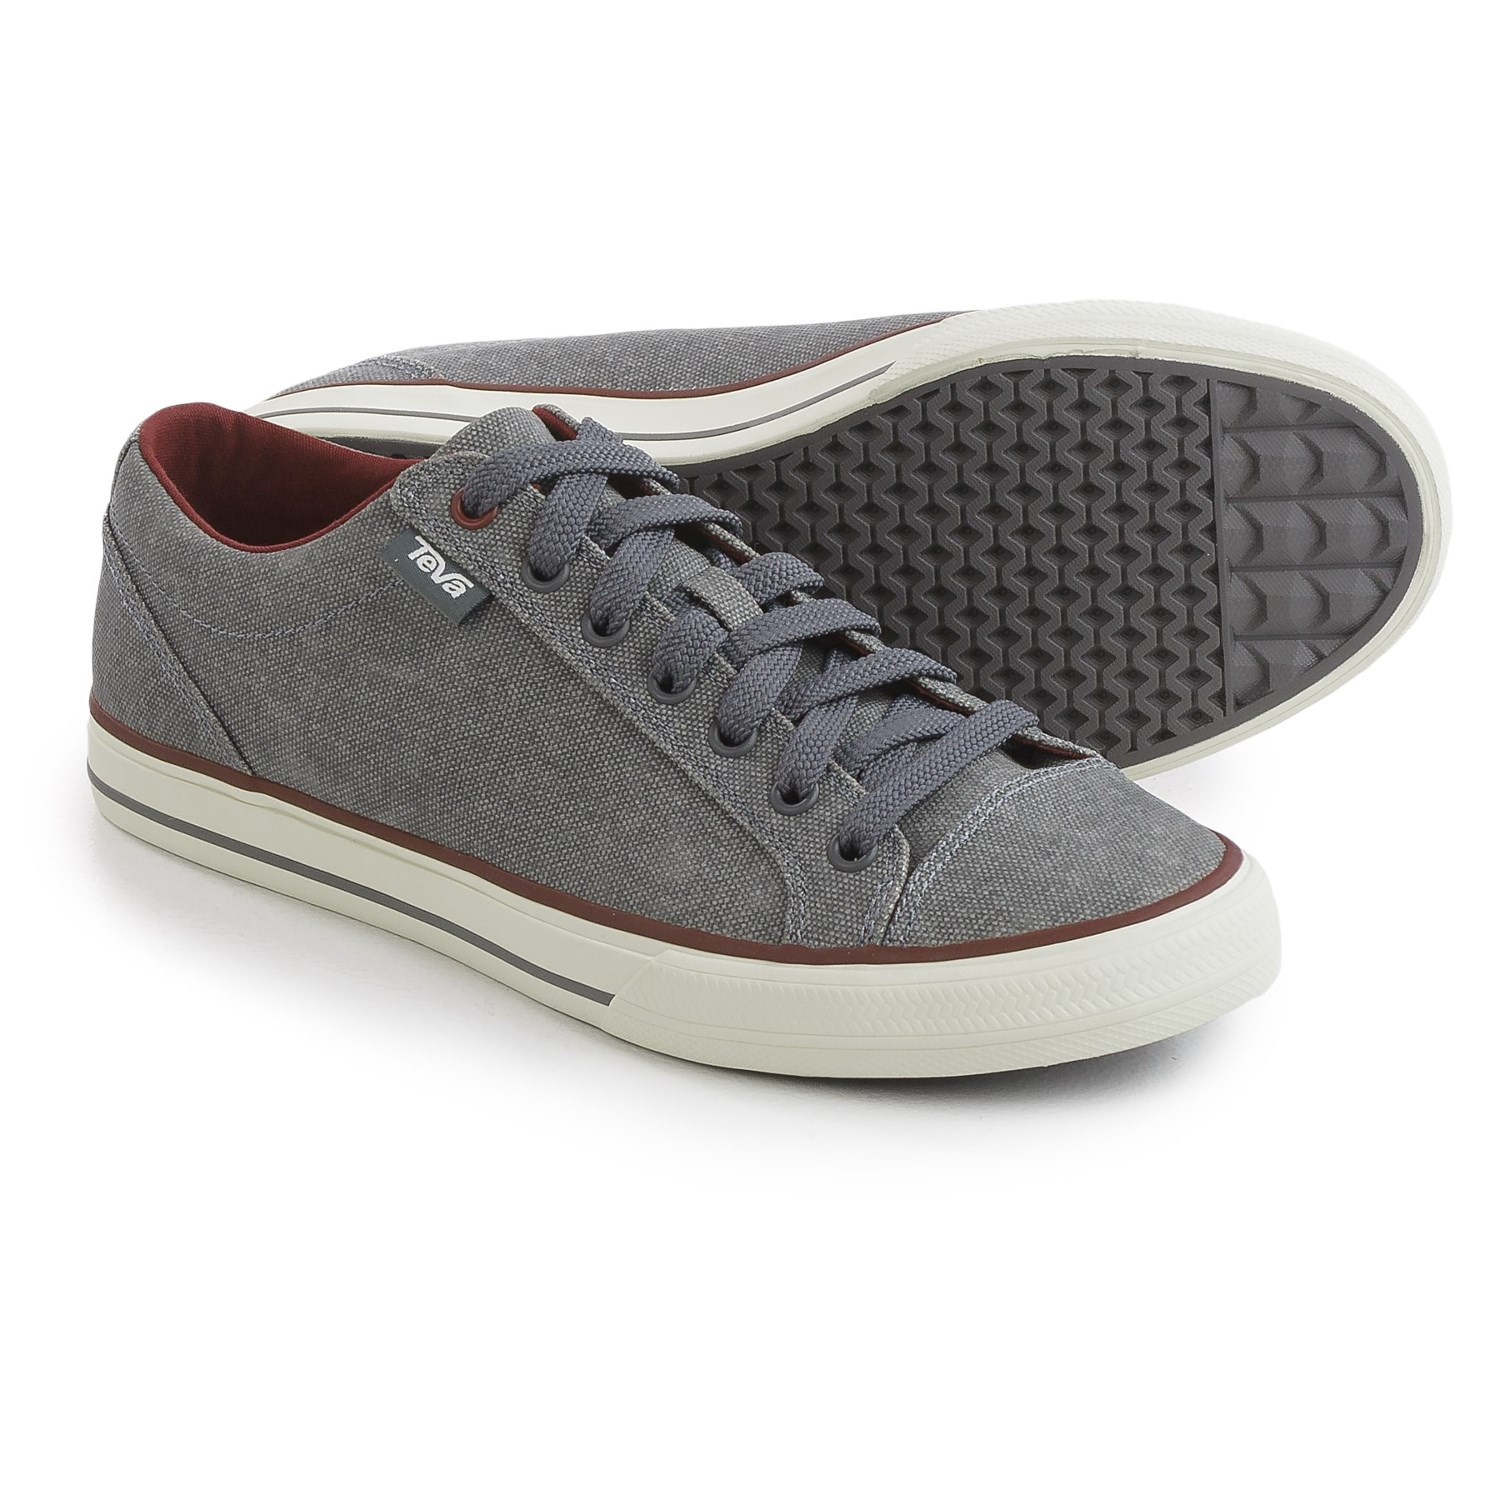 Teva Roller Washed Canvas Sneakers For Men 231mg Save 57